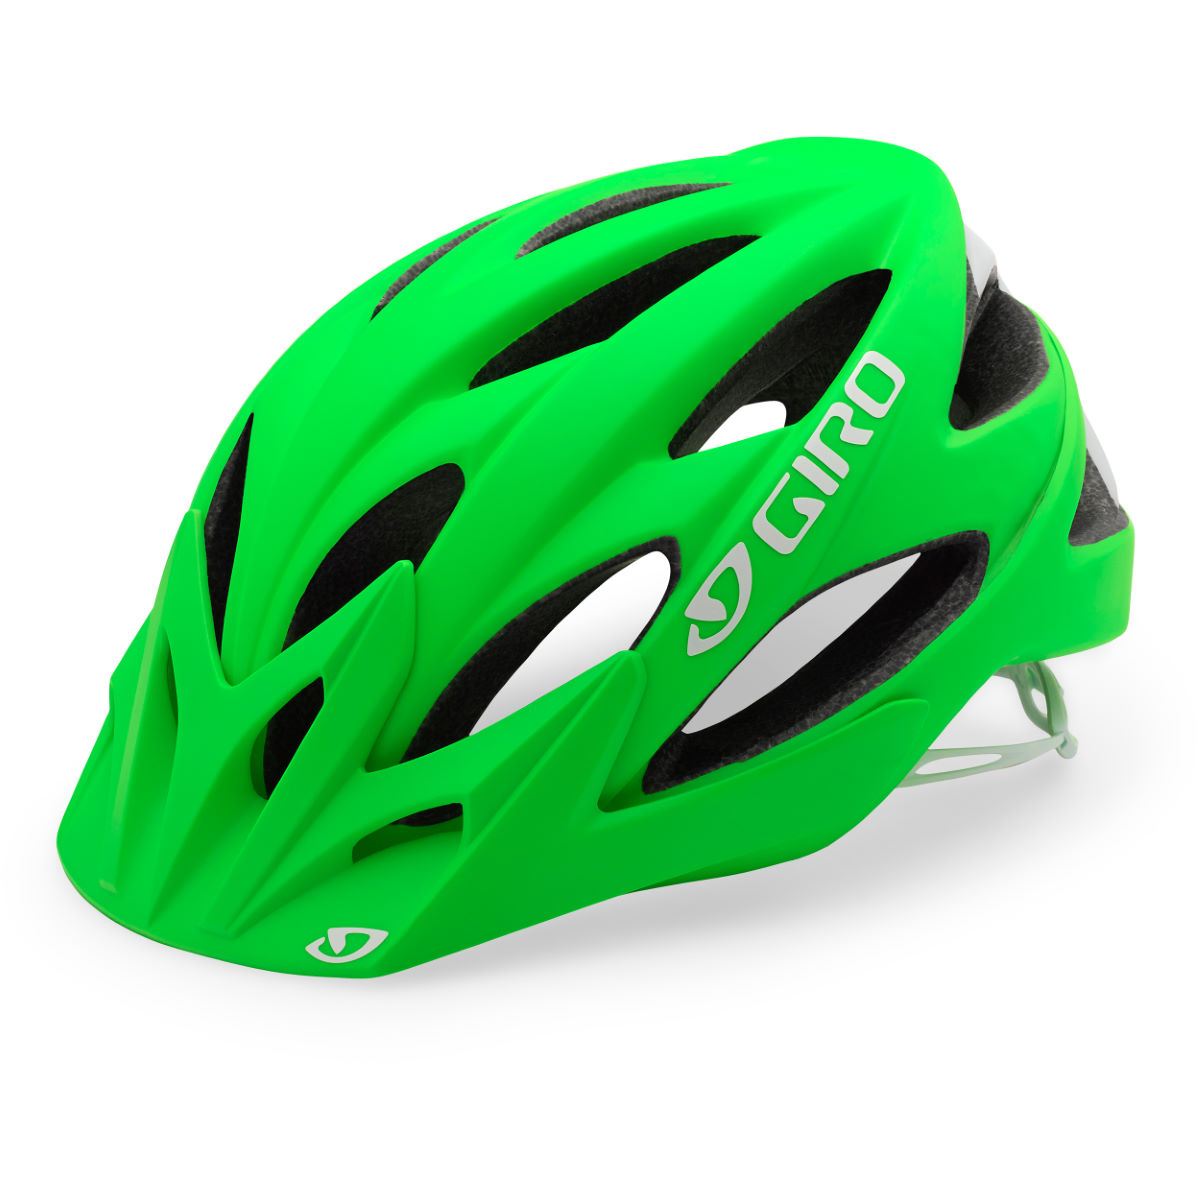 Casque Giro Xar - Small 51-55cm Matt Bright Green Casques VTT